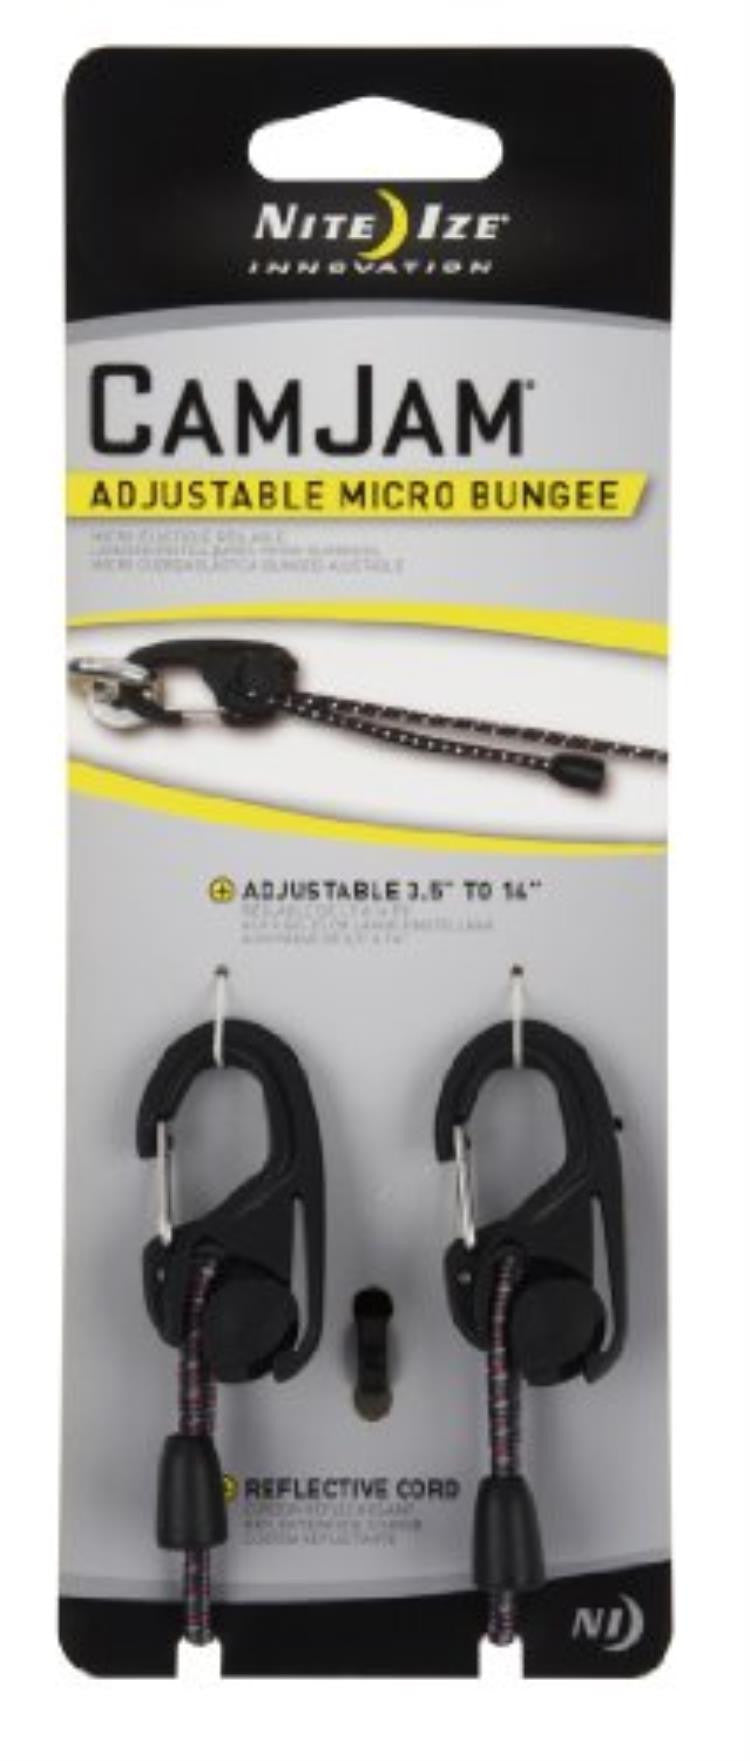 Nite Ize CamJam Adjustable Micro Bungee - Trailblazer Outdoors, Pickering